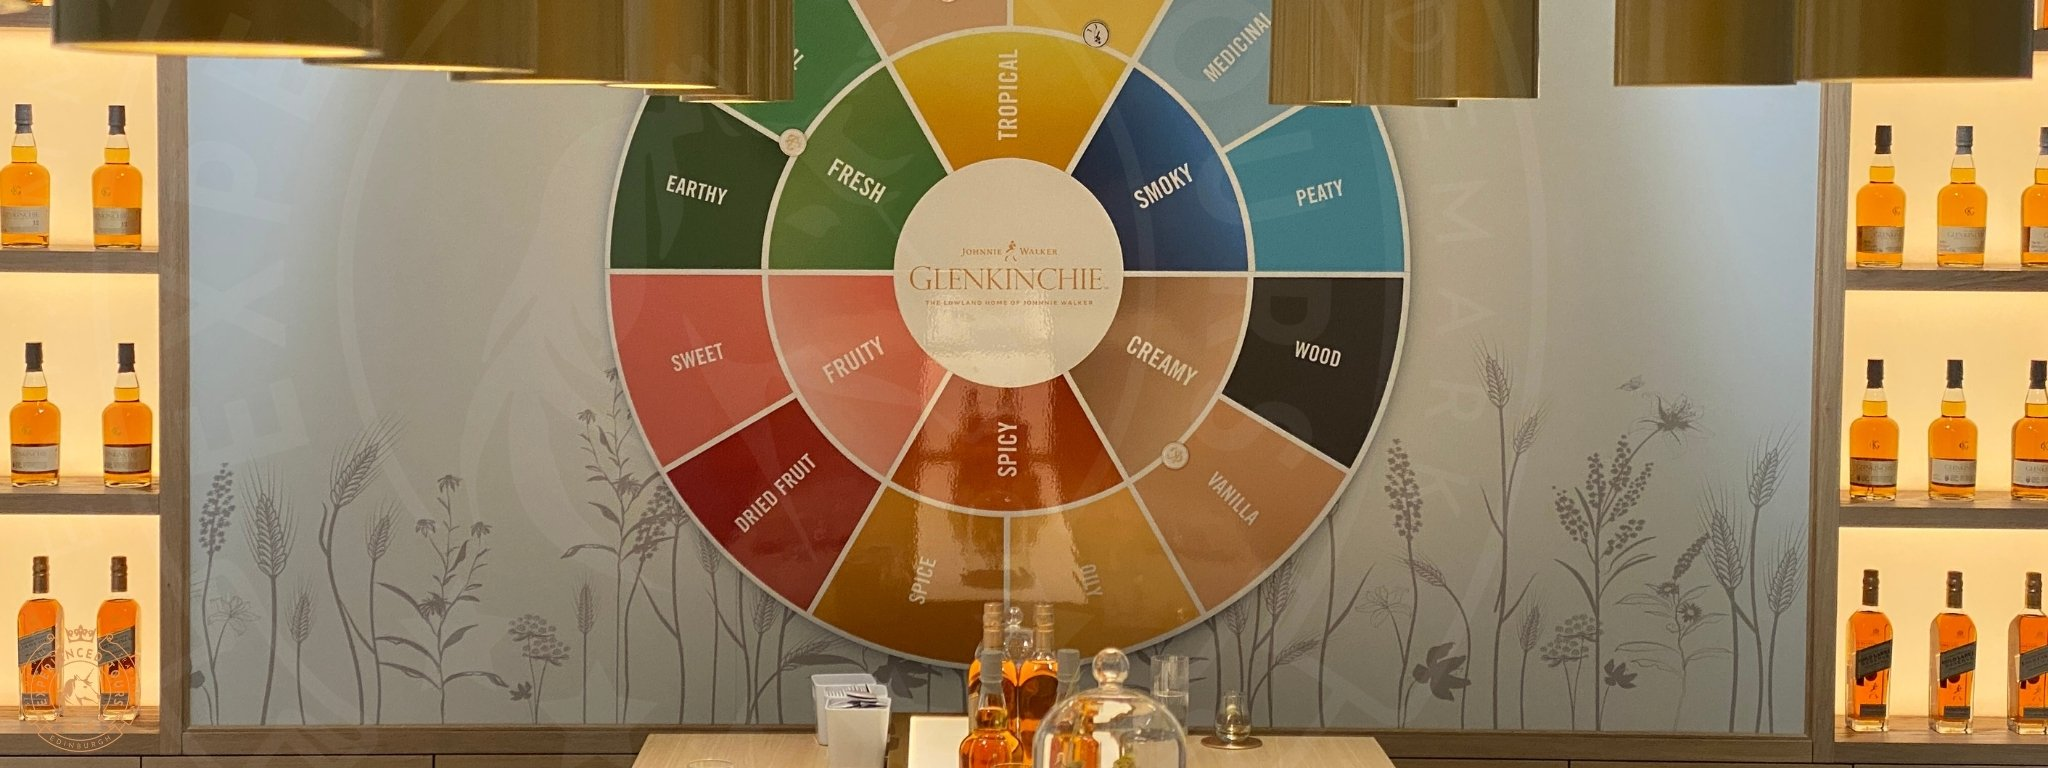 Tasting wheel, depicting the characteristics of the whisky